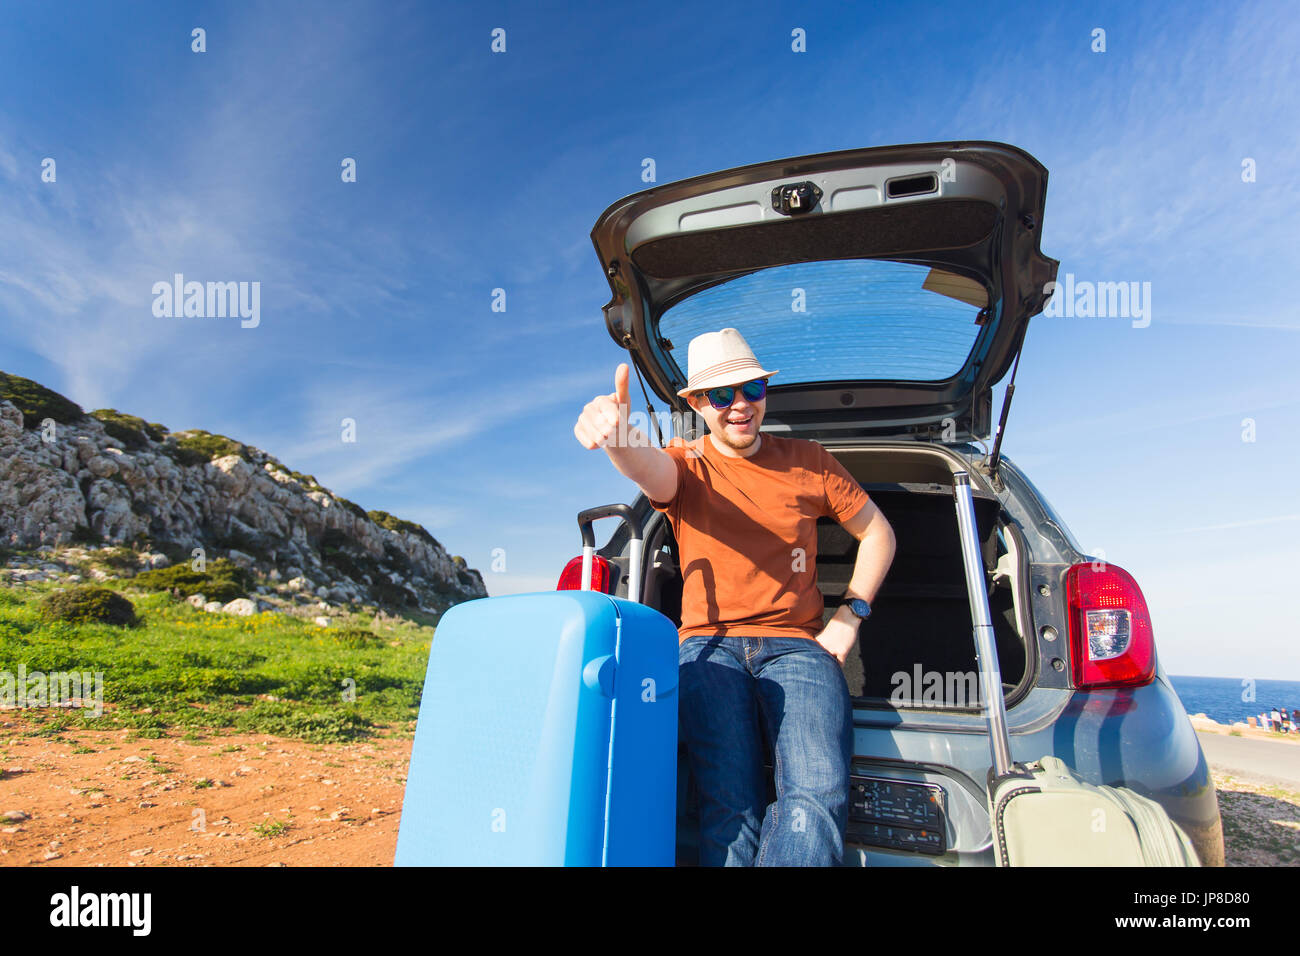 Funny Happy Man Going On Summer Vacation Car Travel Concept